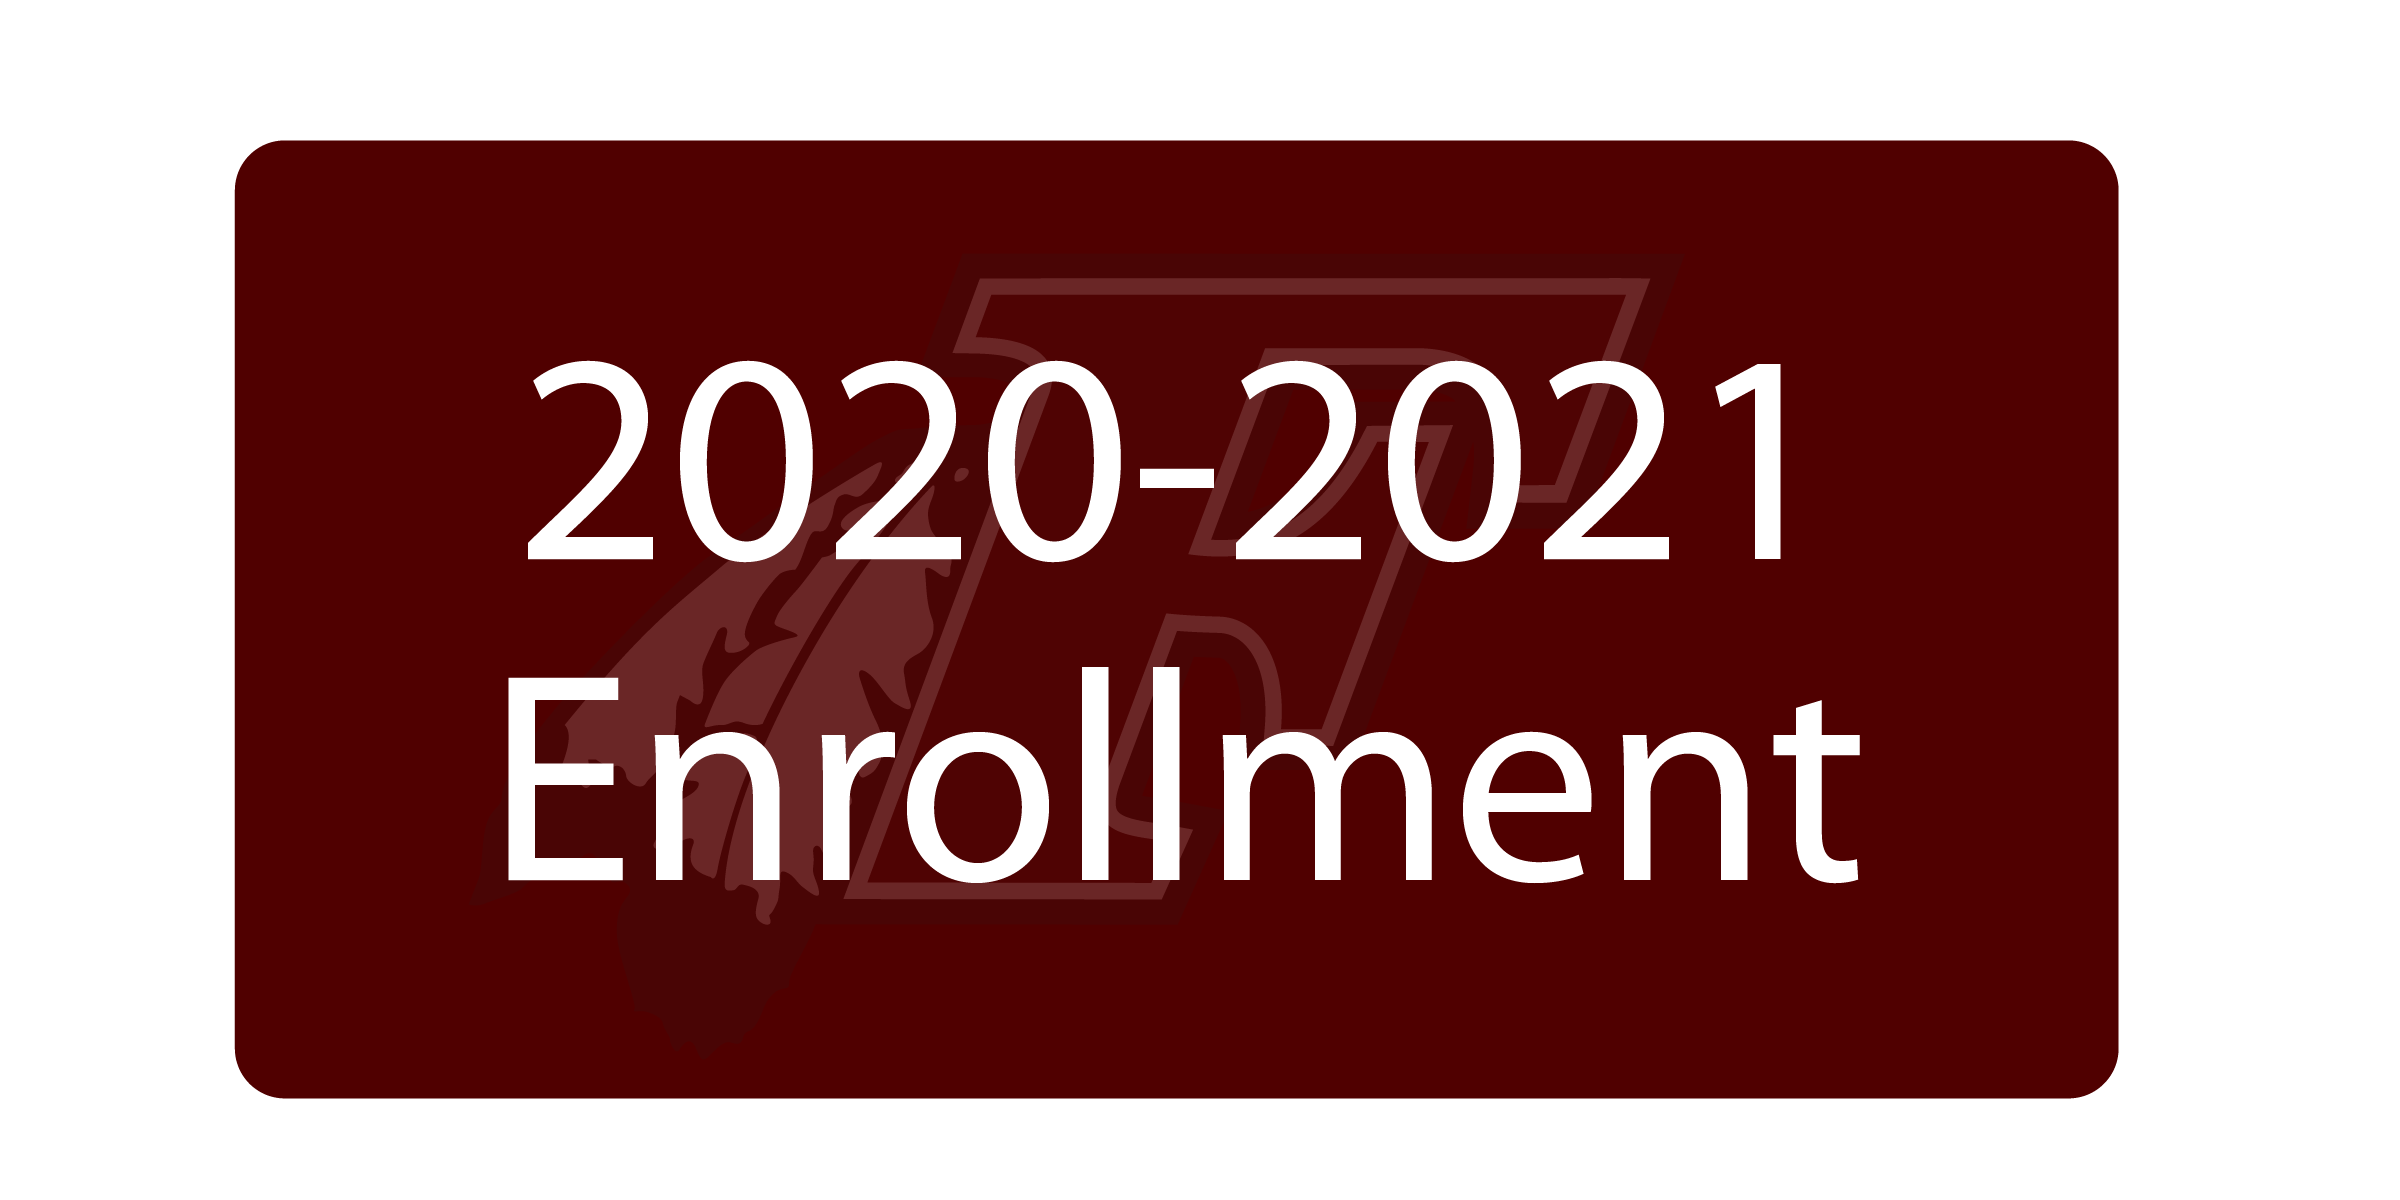 Enroll - The School District Of Menomonee Falls Intended For Menomonee Falls School District Calendar 2021